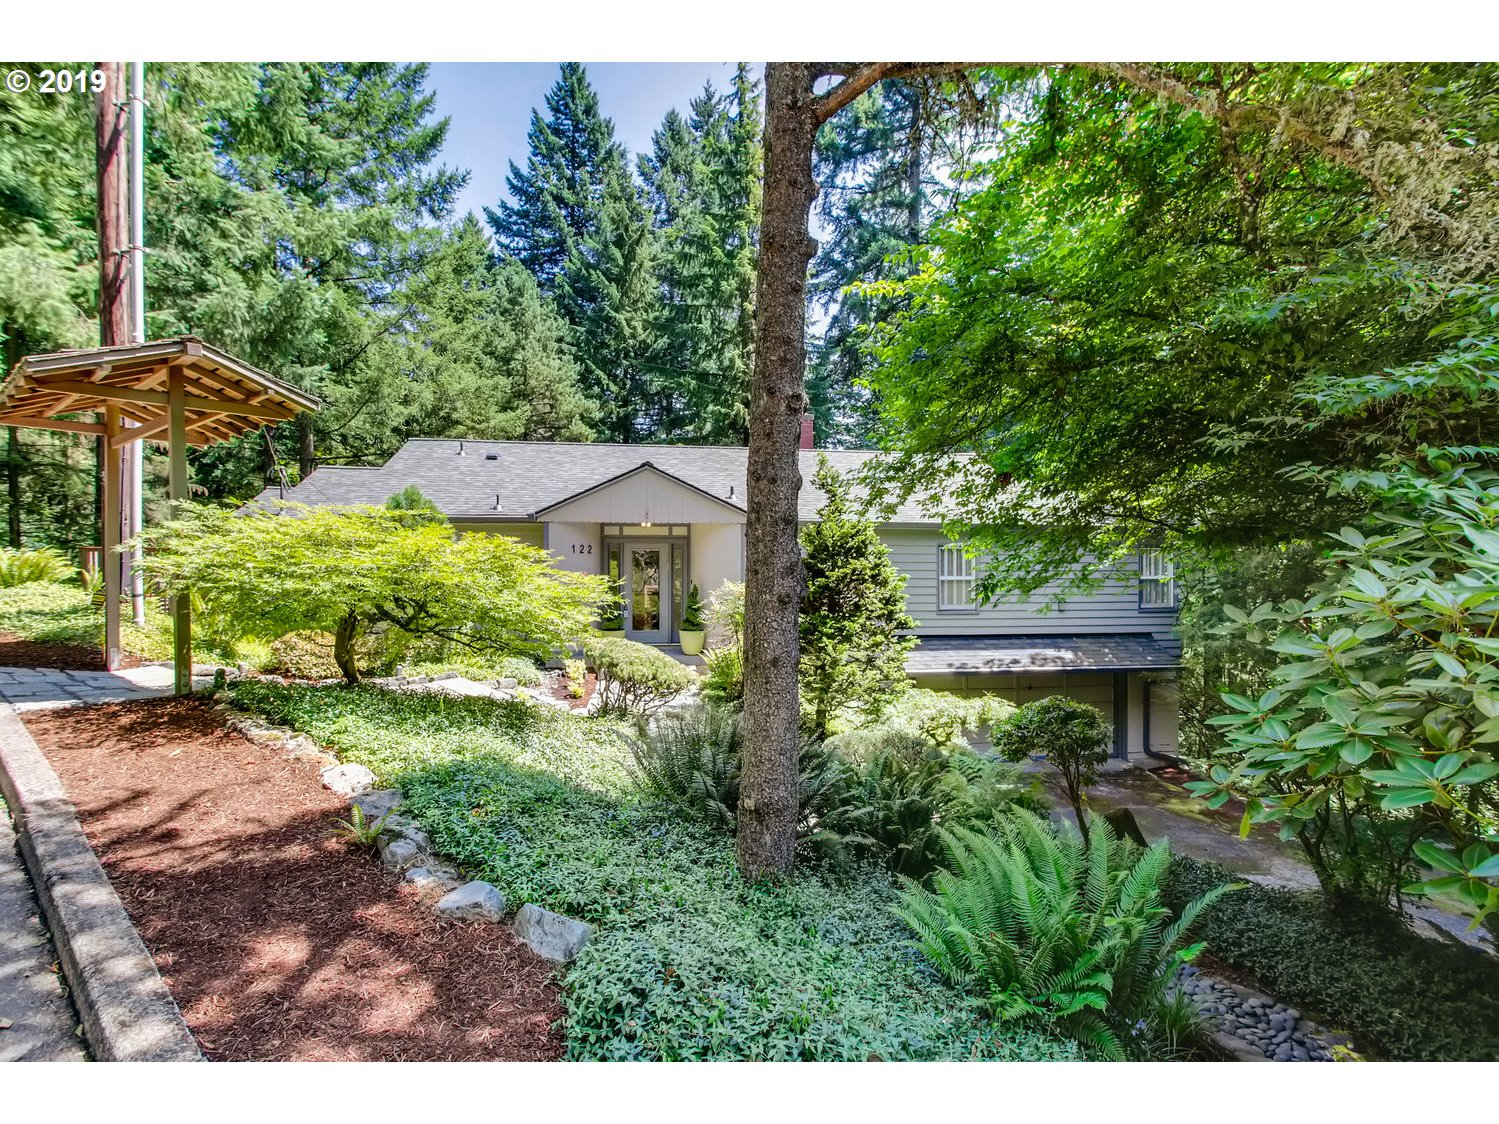 Over $50K invested since last on the market! Rare opportunity to be minutes from downtown yet in a peaceful forest. Move-in ready, master bed/bath on the main level, plus another bed & bath, formal dining or 4th bedroom, gourmet kitchen w/stainless top grade appliances, & huge living room & library/formal dining, big deck.  Another bedroom down w/ensuite bath, big family room w/fireplace, laundry plus tons of storage, 4th utility bath. [Home Energy Score = 5. HES Report at https://rpt.greenbuildingregistry.com/hes/OR10118358]